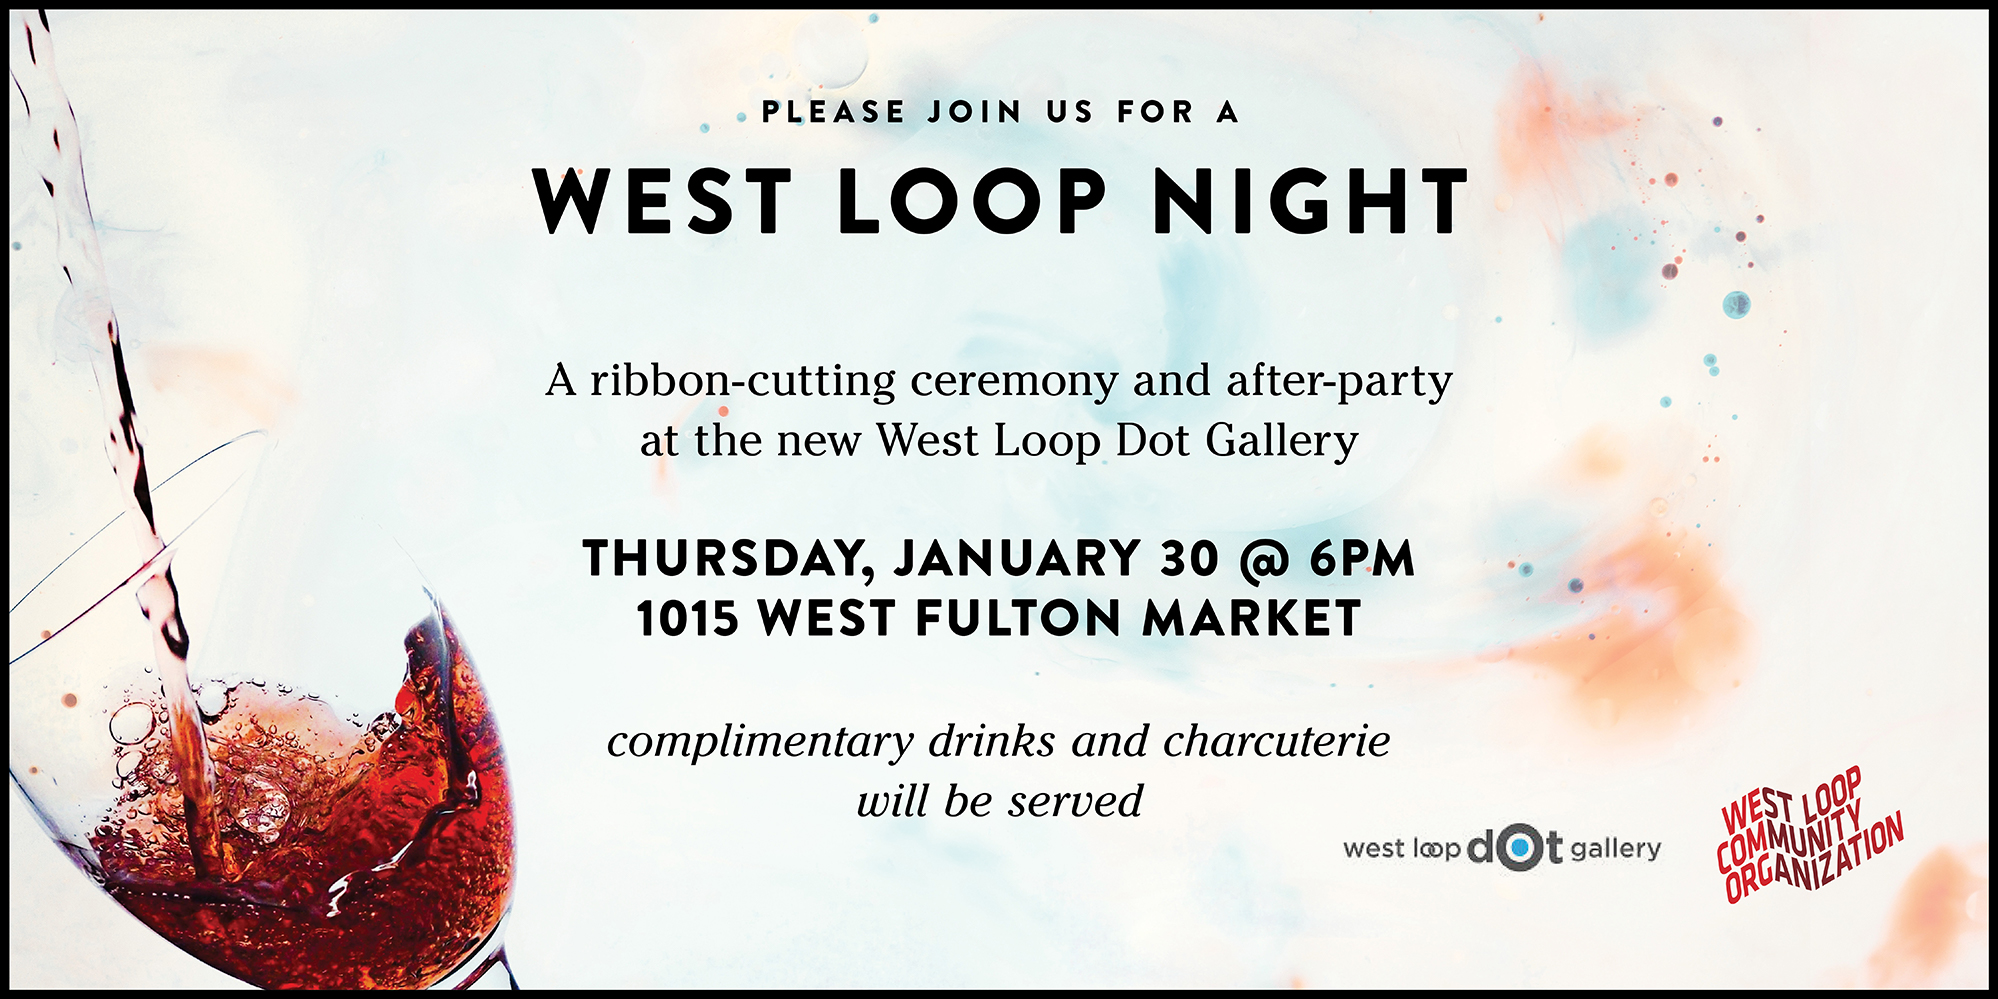 West Loop Night at West Loop Dot Gallery